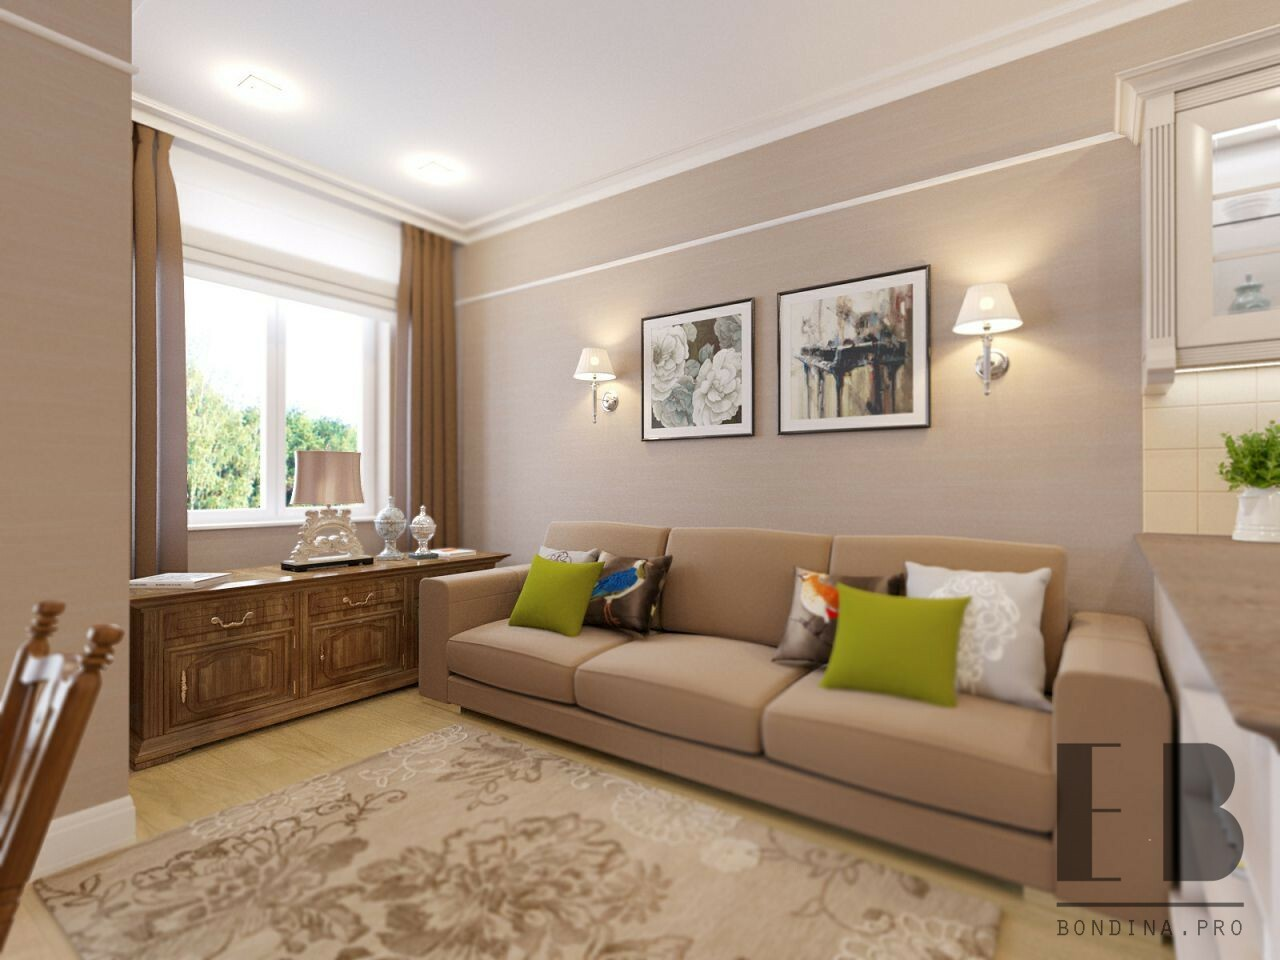 Small Living Room in Beige Color with Beige Sofa and wooden low chest of drawers